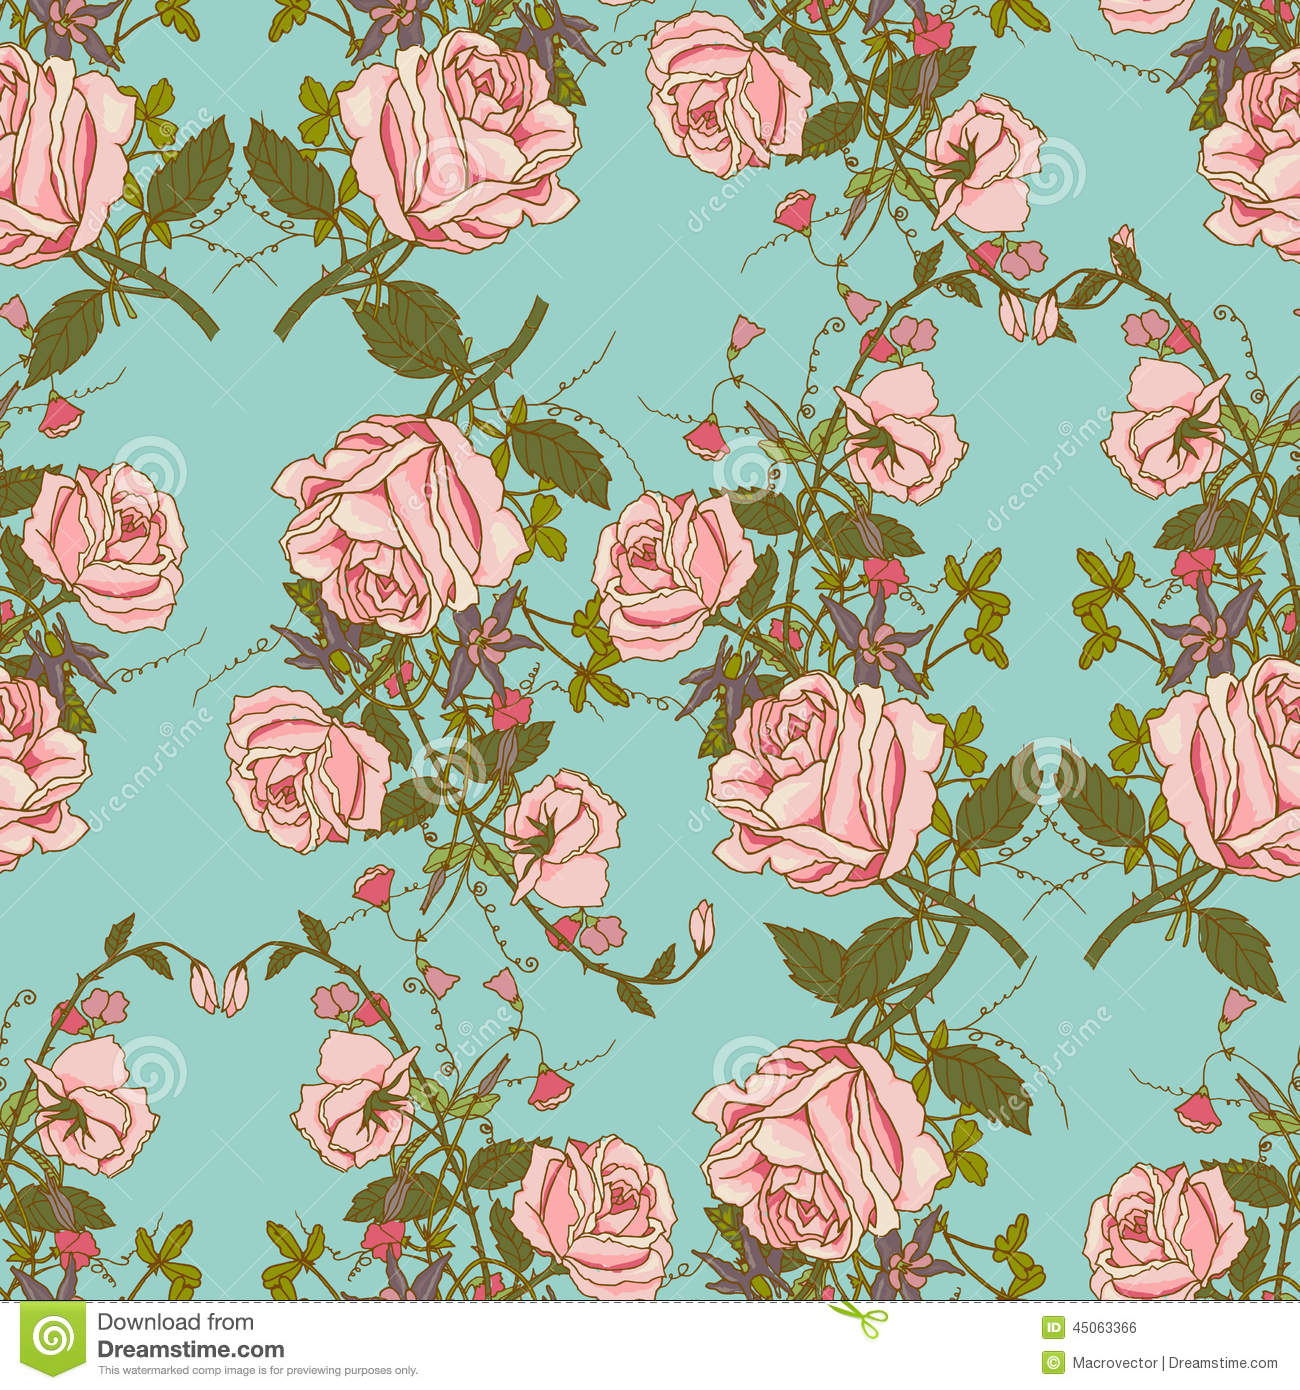 Vintage Floral Seamless Color Pattern Stock Vector Illustration Of